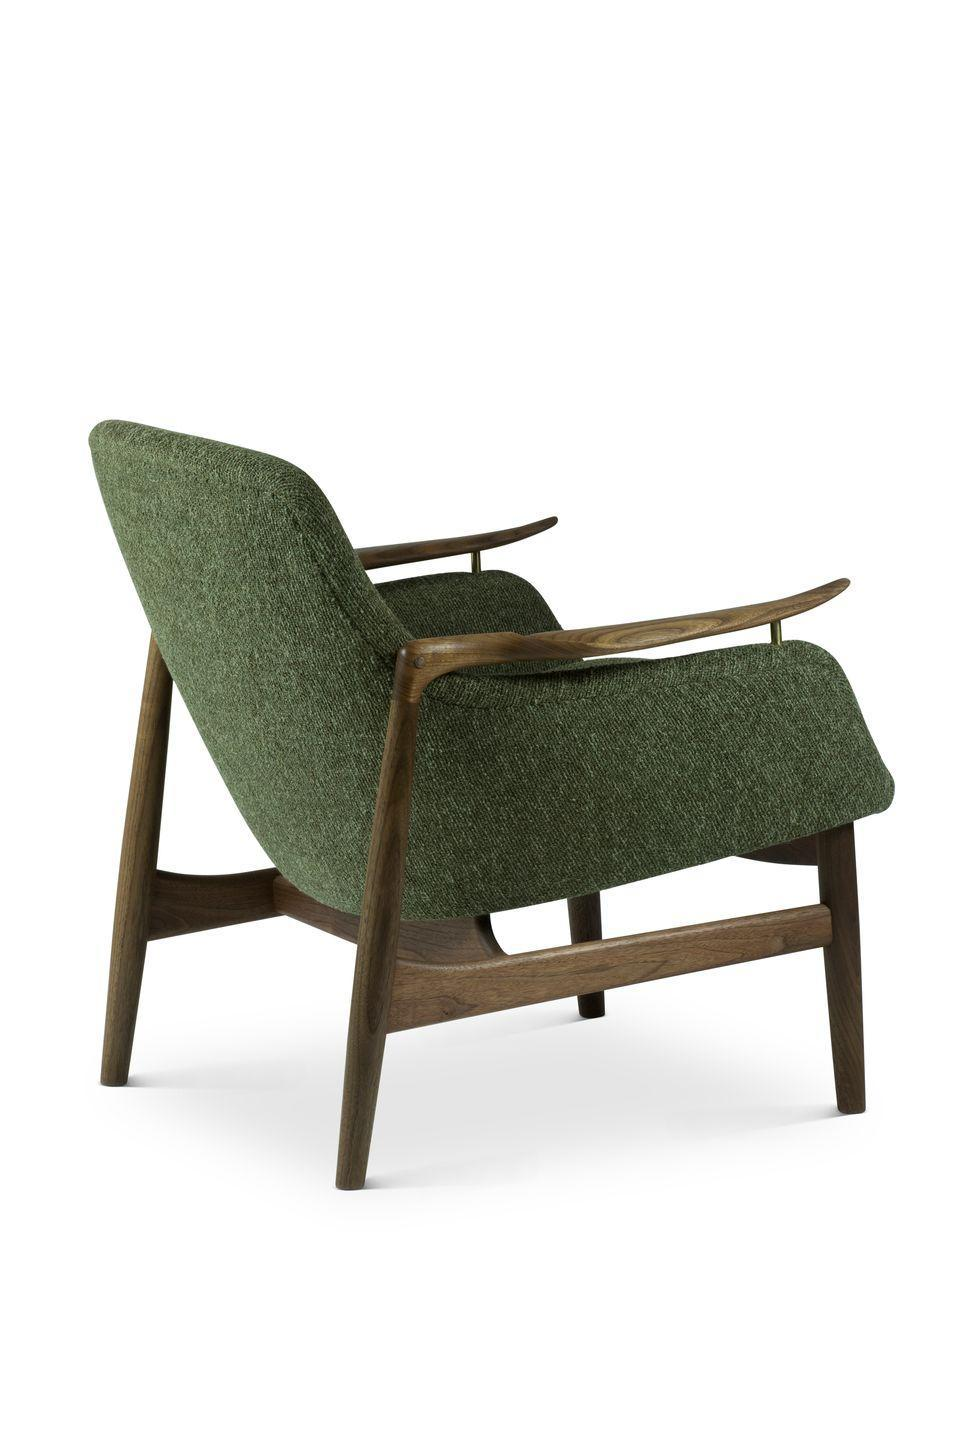 """<p>With its exquisitely carved wooden armrests and inviting shell seat, Finn Juhl's 1953 design is one of his most popular and enduring pieces. Reissued in 2000, its elegant frame looks effortless from all angles. From £5,049, <a href=""""https://finnjuhl.com/"""" rel=""""nofollow noopener"""" target=""""_blank"""" data-ylk=""""slk:finnjuhl.com"""" class=""""link rapid-noclick-resp"""">finnjuhl.com</a></p>"""